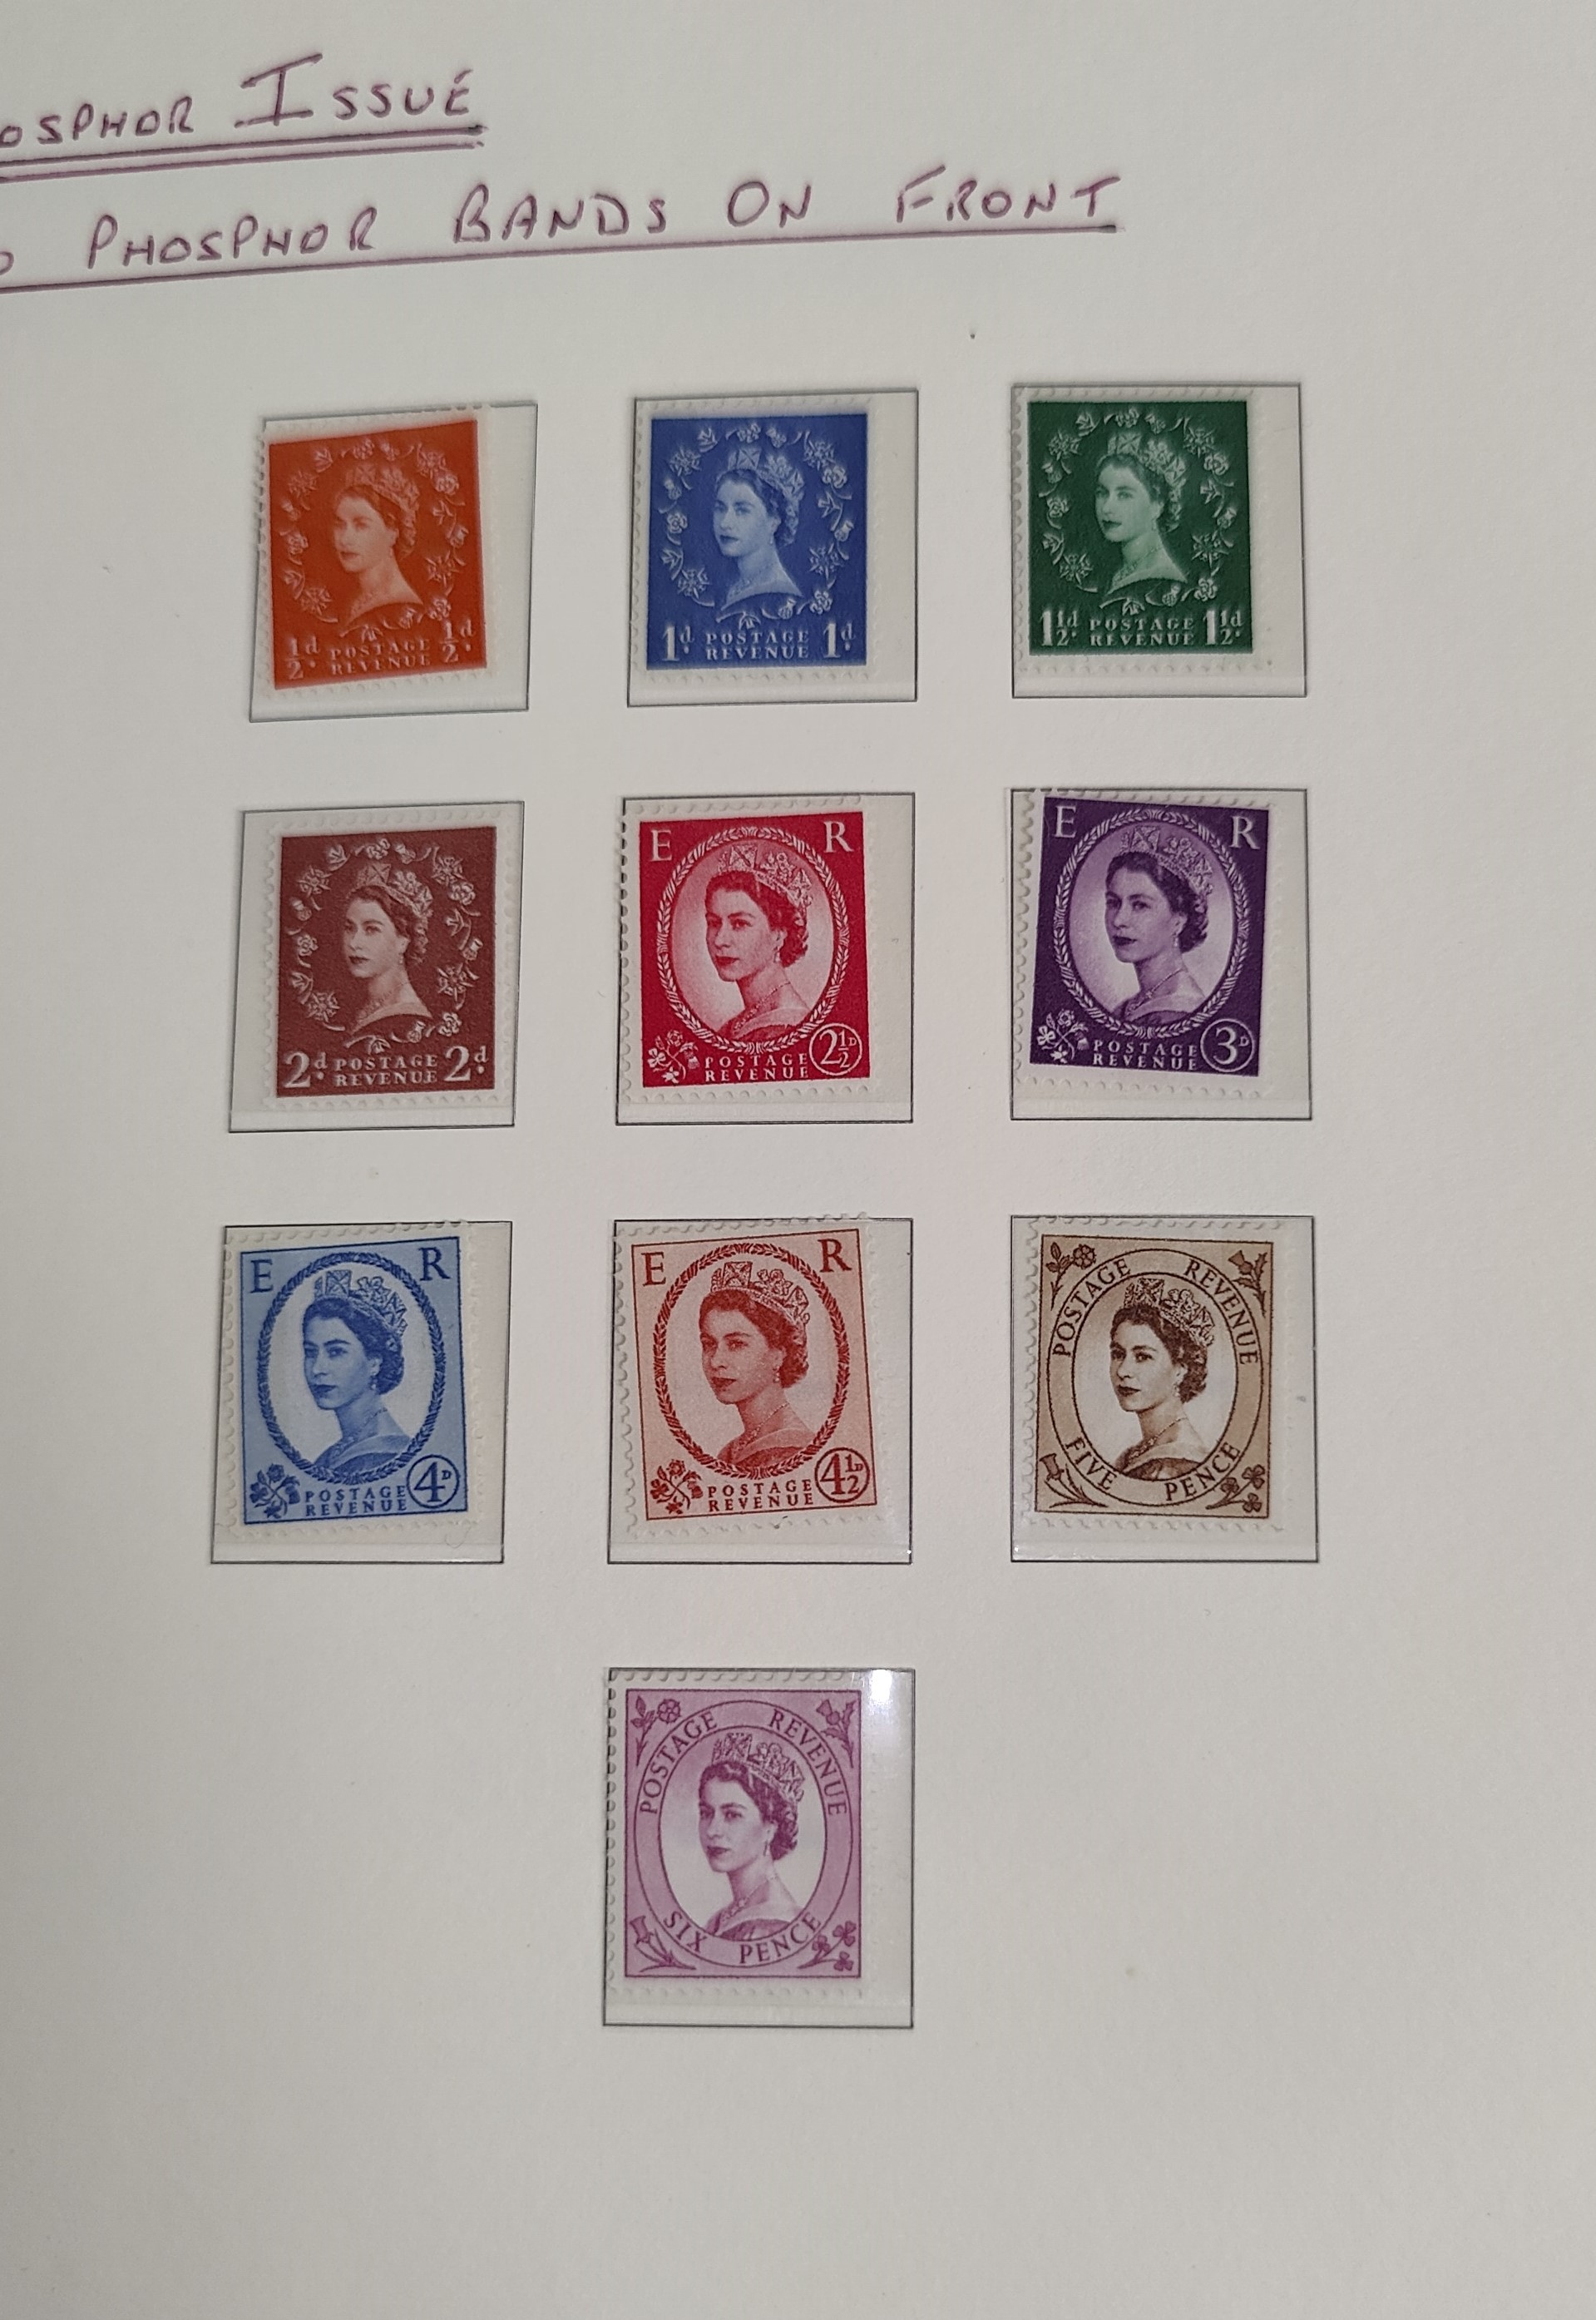 GB: A mounted mint collection of stamps, George V - QEII to include Empire Exhibition 1924/5, £1 - Image 4 of 5